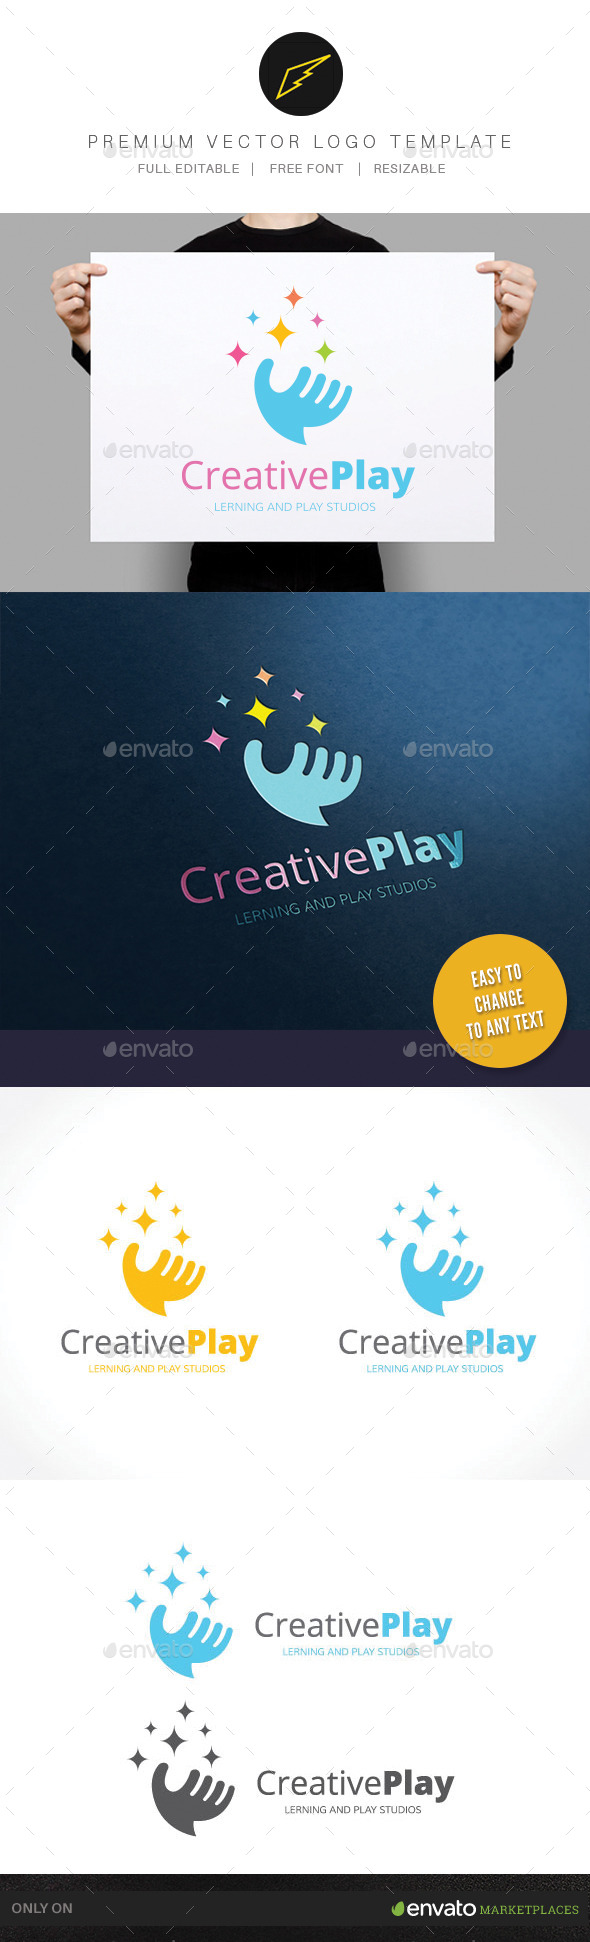 GraphicRiver Creative Play 9840684